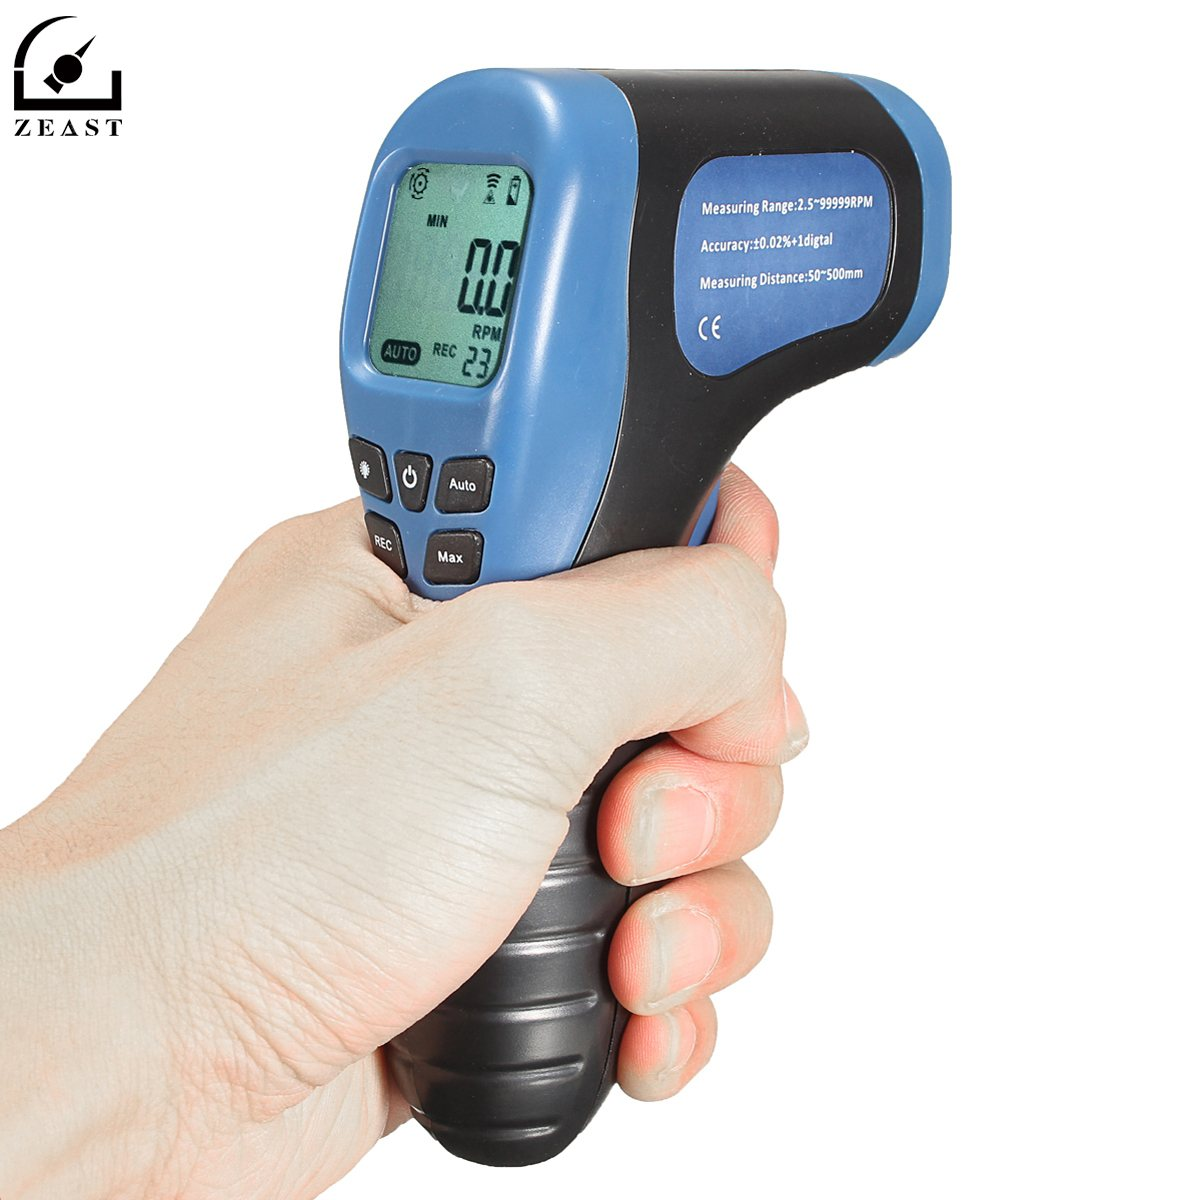 Tachometer Non Contact Digital Laser Photo Tachometer Gun RPM Tach Tester Meter Speed Gauge hot sale professional digital non contact stroboscope dm6237p flash frequency meter 60 19 999 rpm per minute tachometer tester